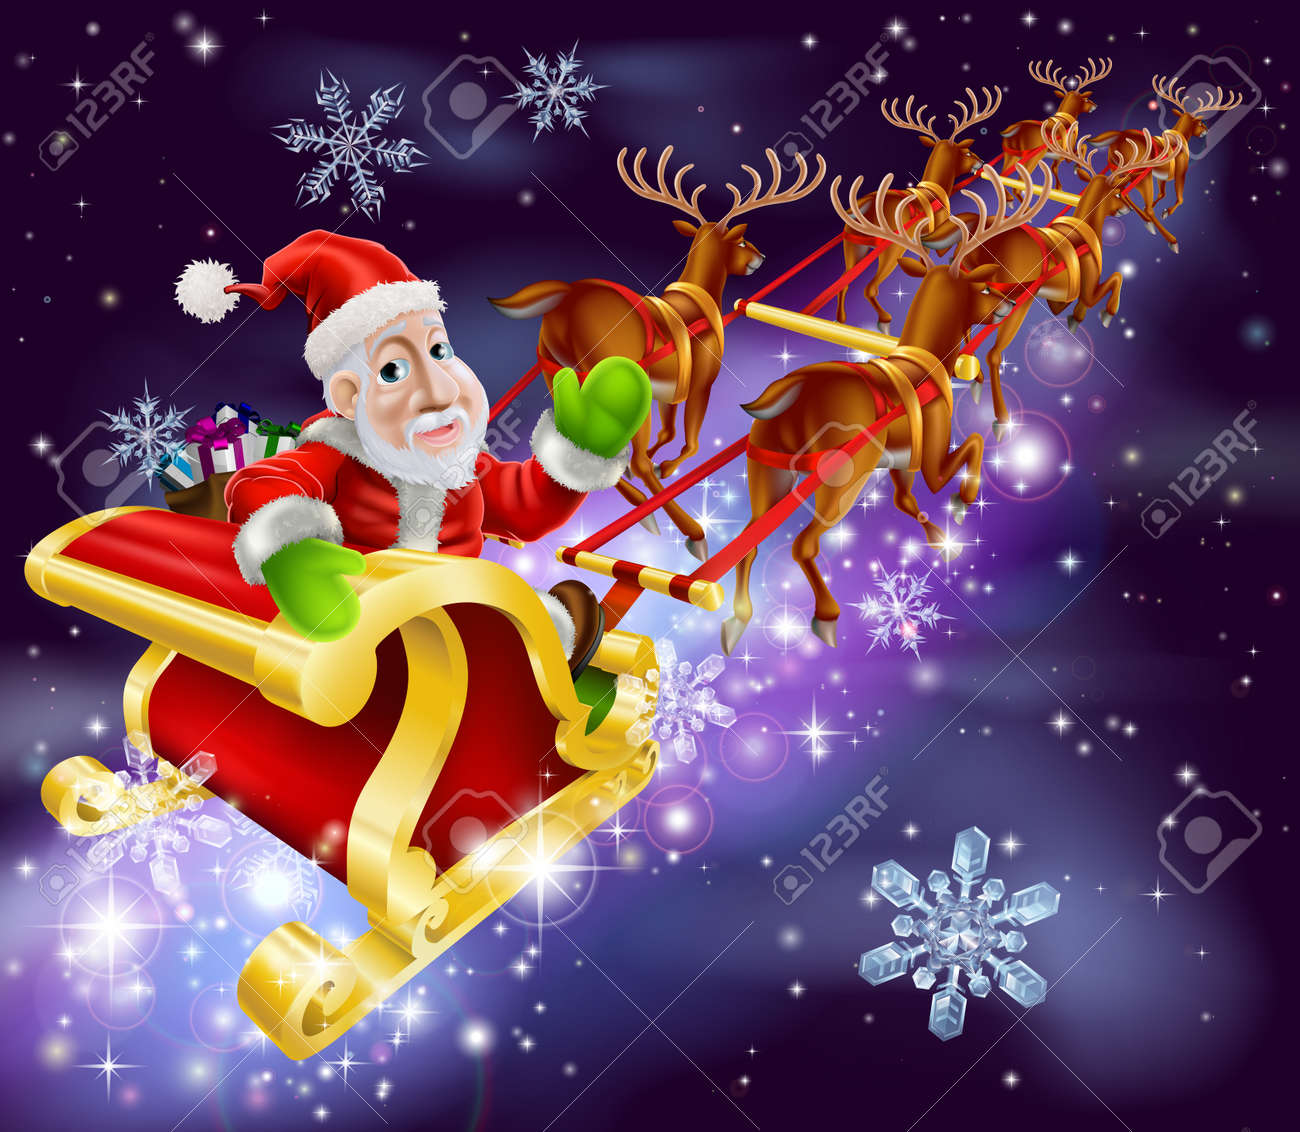 Christmas illustration of Santa Claus flying in his sled or sleigh with night background Stock Vector - 21358055